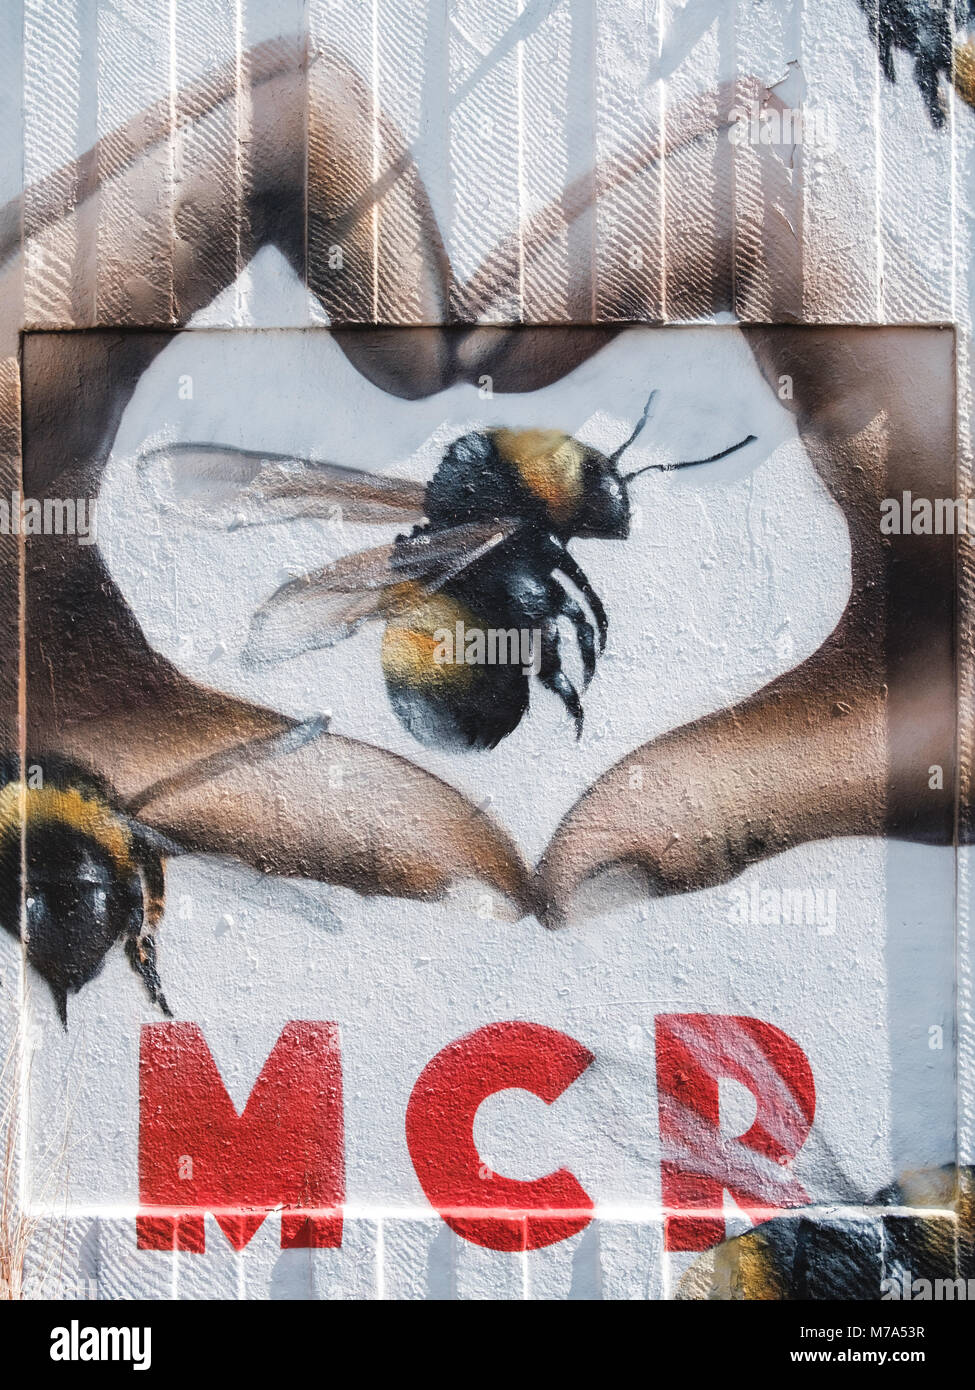 Street art in Manchester's Northern Quarter. The Love MCR design is part of the response to the terrorist attack - Stock Image